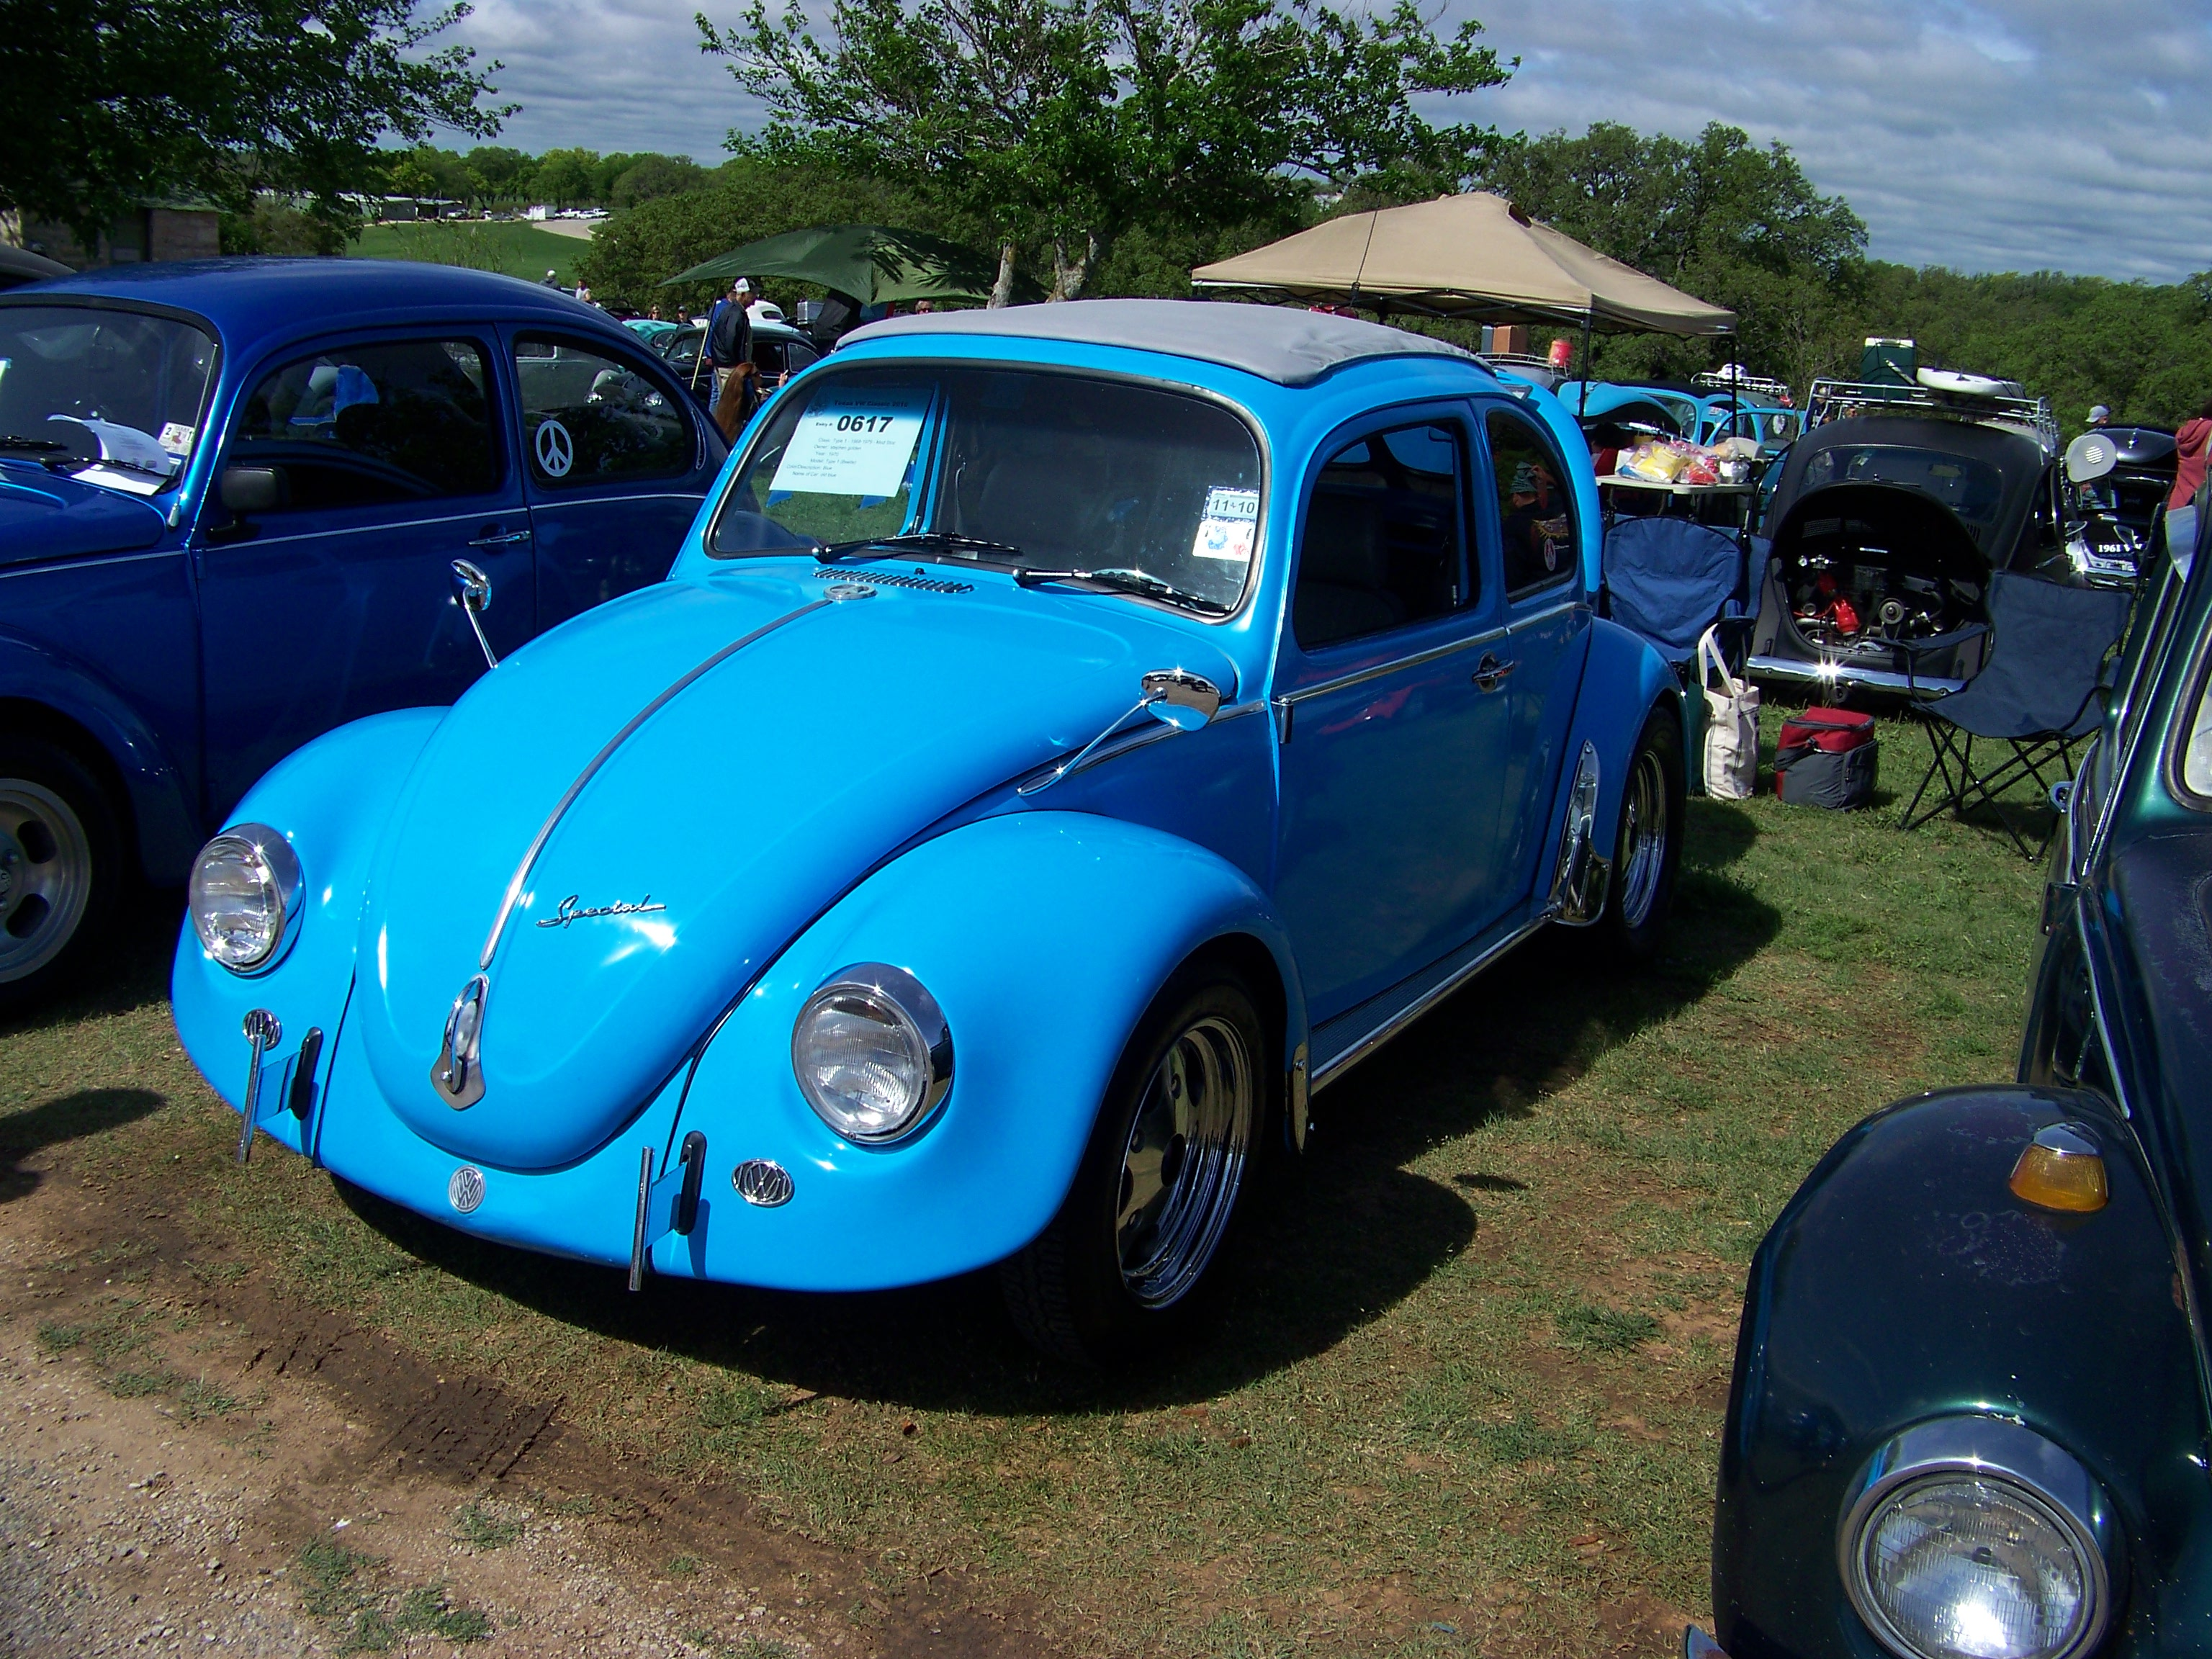 beetle vw 1970 classic custom cars texas missouri tx fullsize texasvwclassic